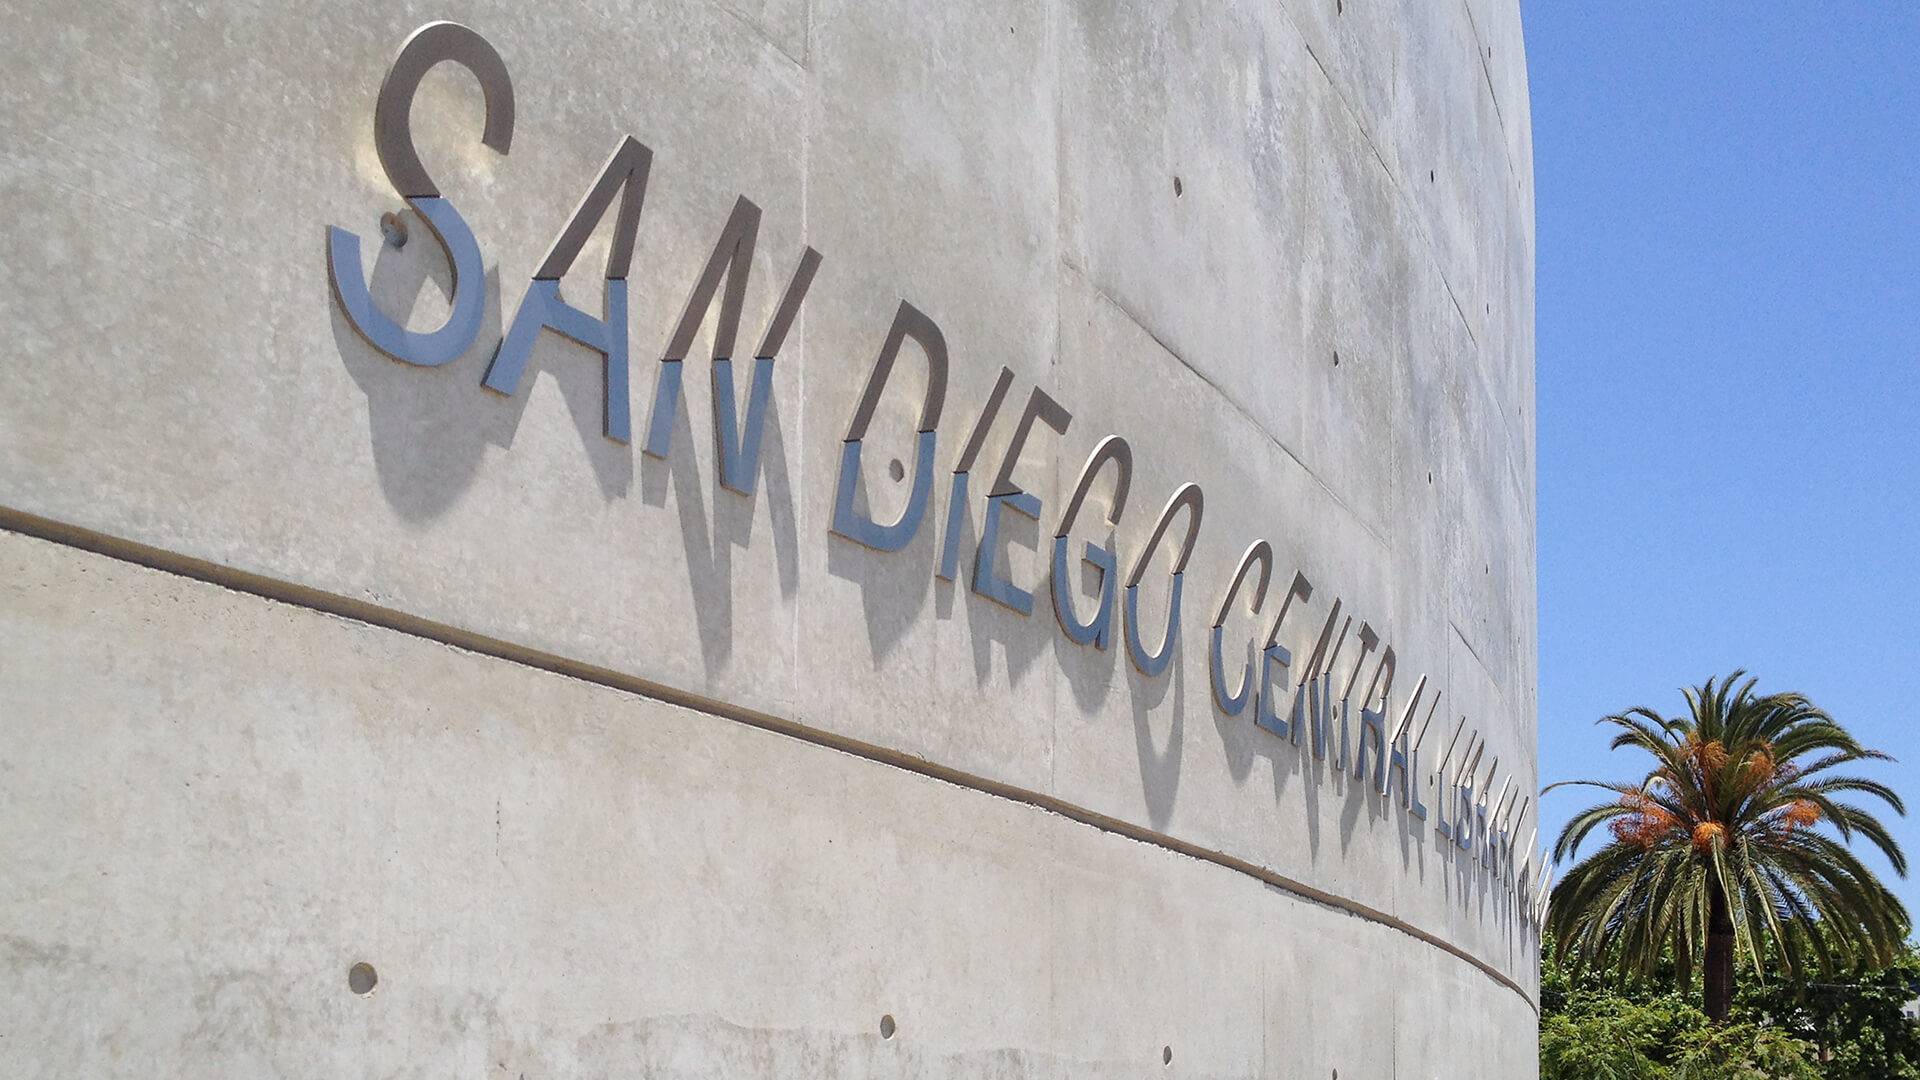 San Diego Central Library signage with custom ornamental detailing.